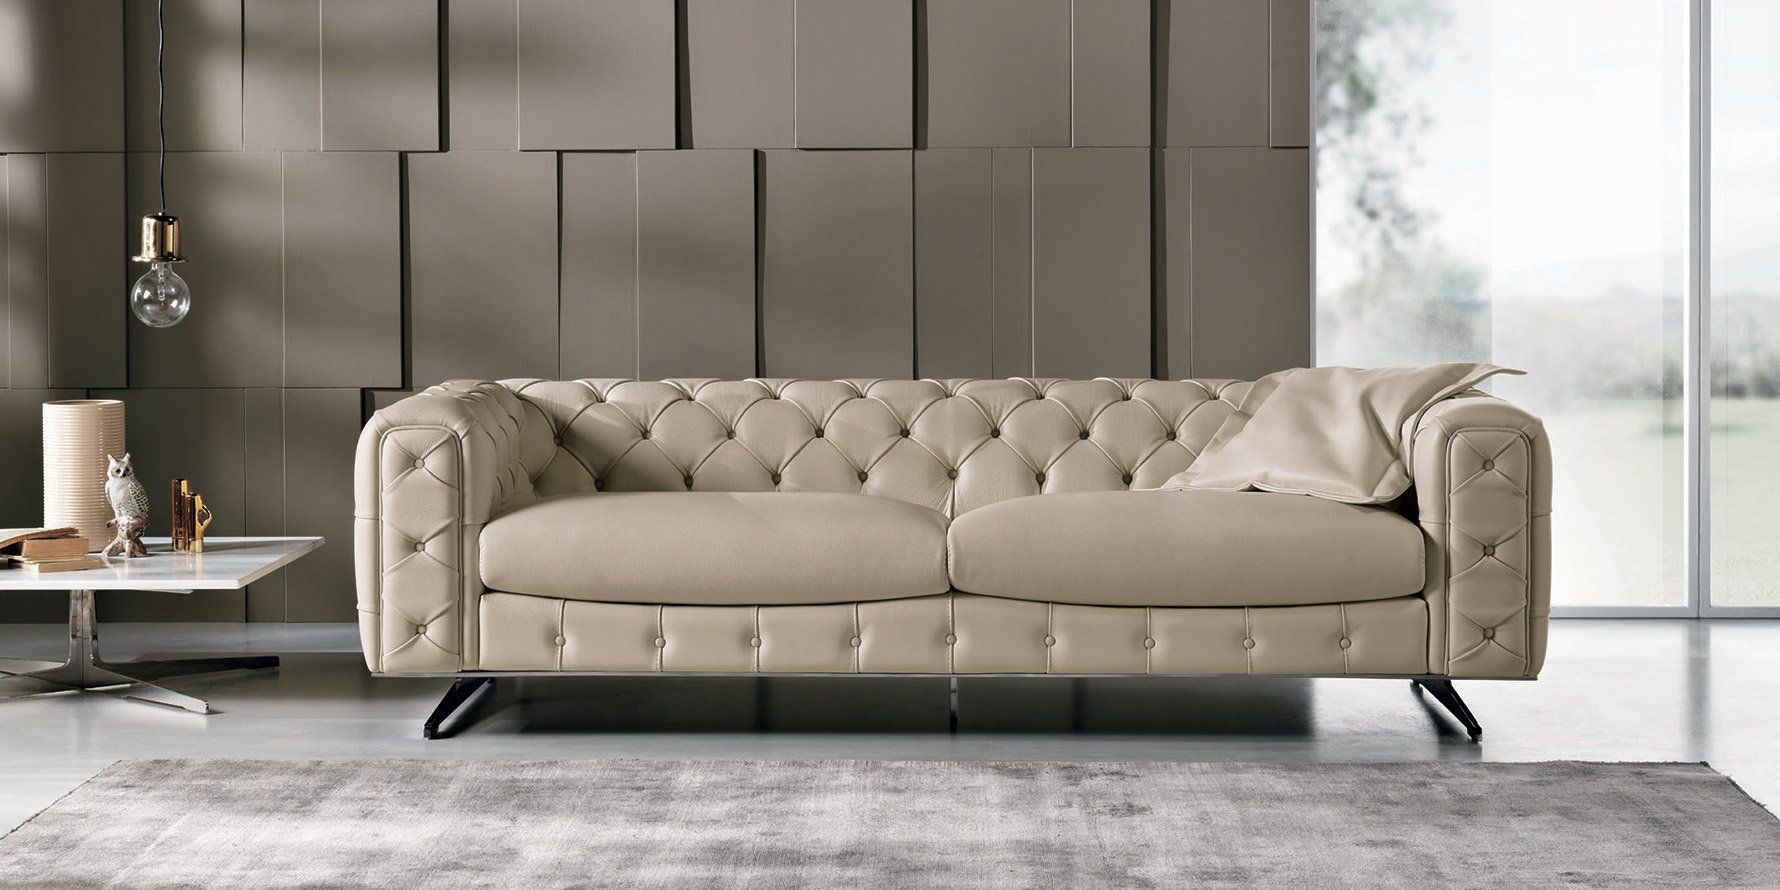 latest italian sofa designs modern table decor the ingrid and loveseat from max divani italy tufted